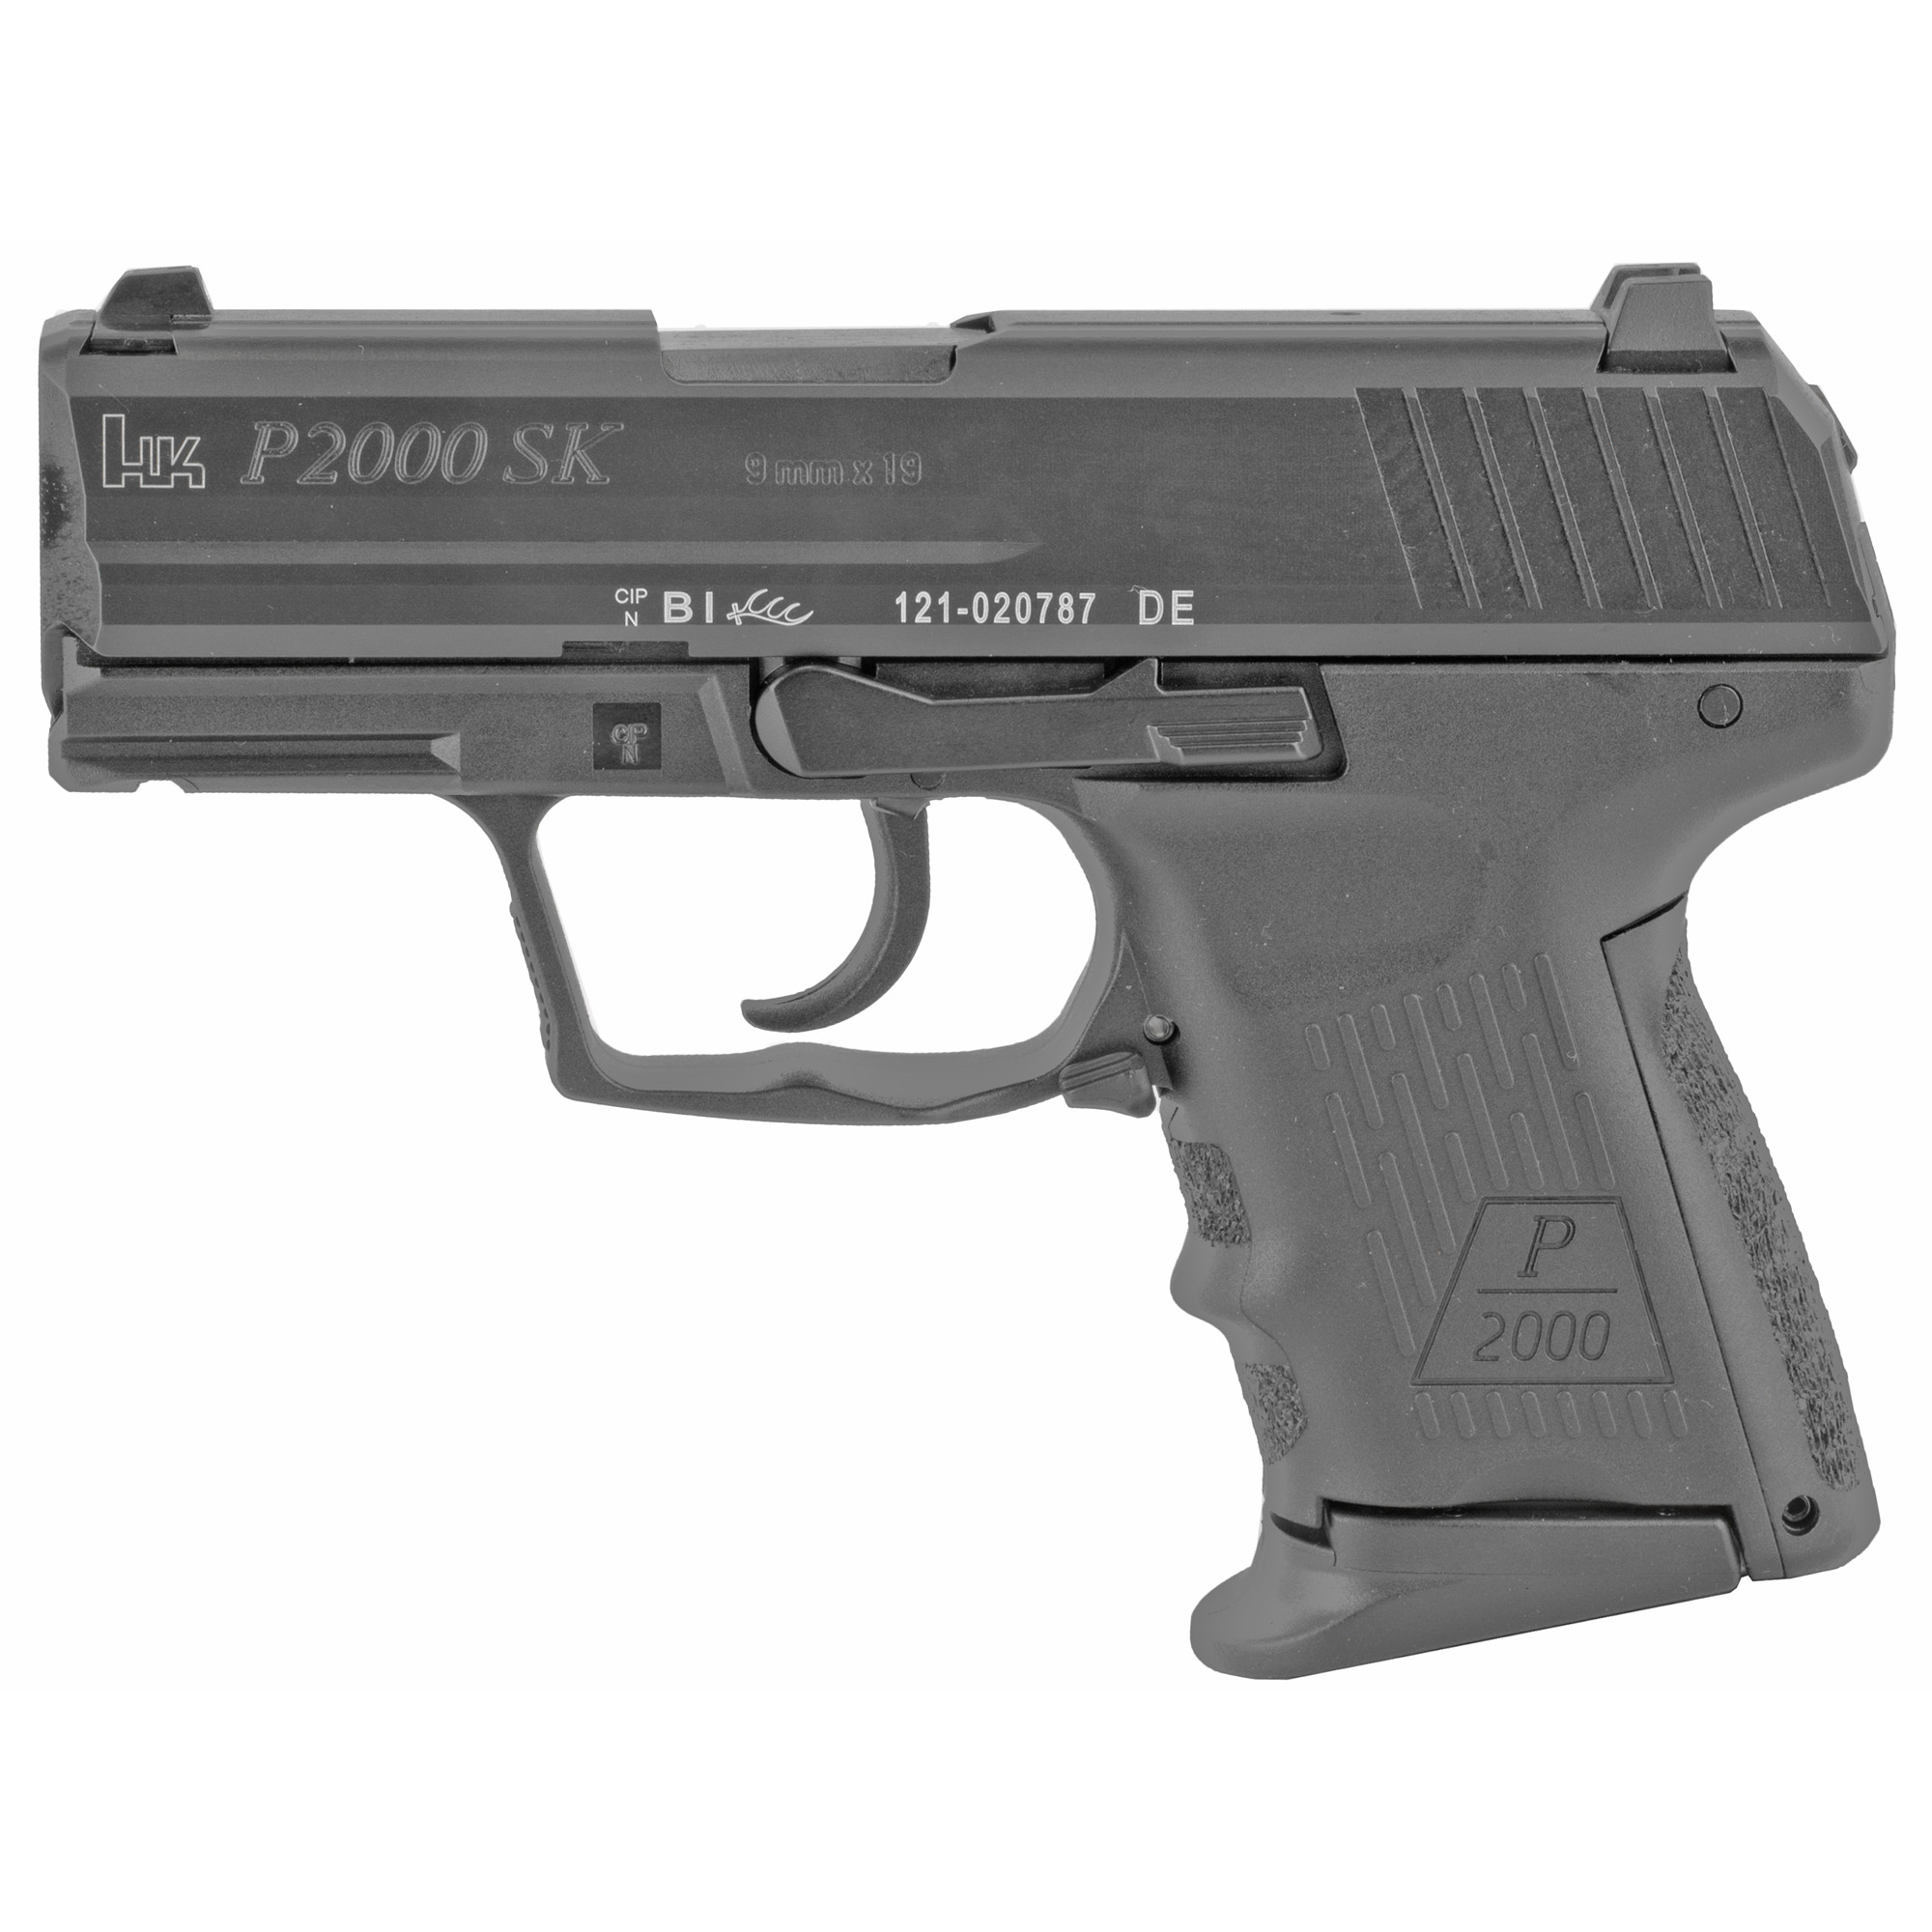 """Like the slightly larger P2000 model"""" the P2000 SK (subcompact) combines elements of the successful HK USP Compact pistol with recent technological innovations from HK engineers - only in a smaller"""" more concealable design."""